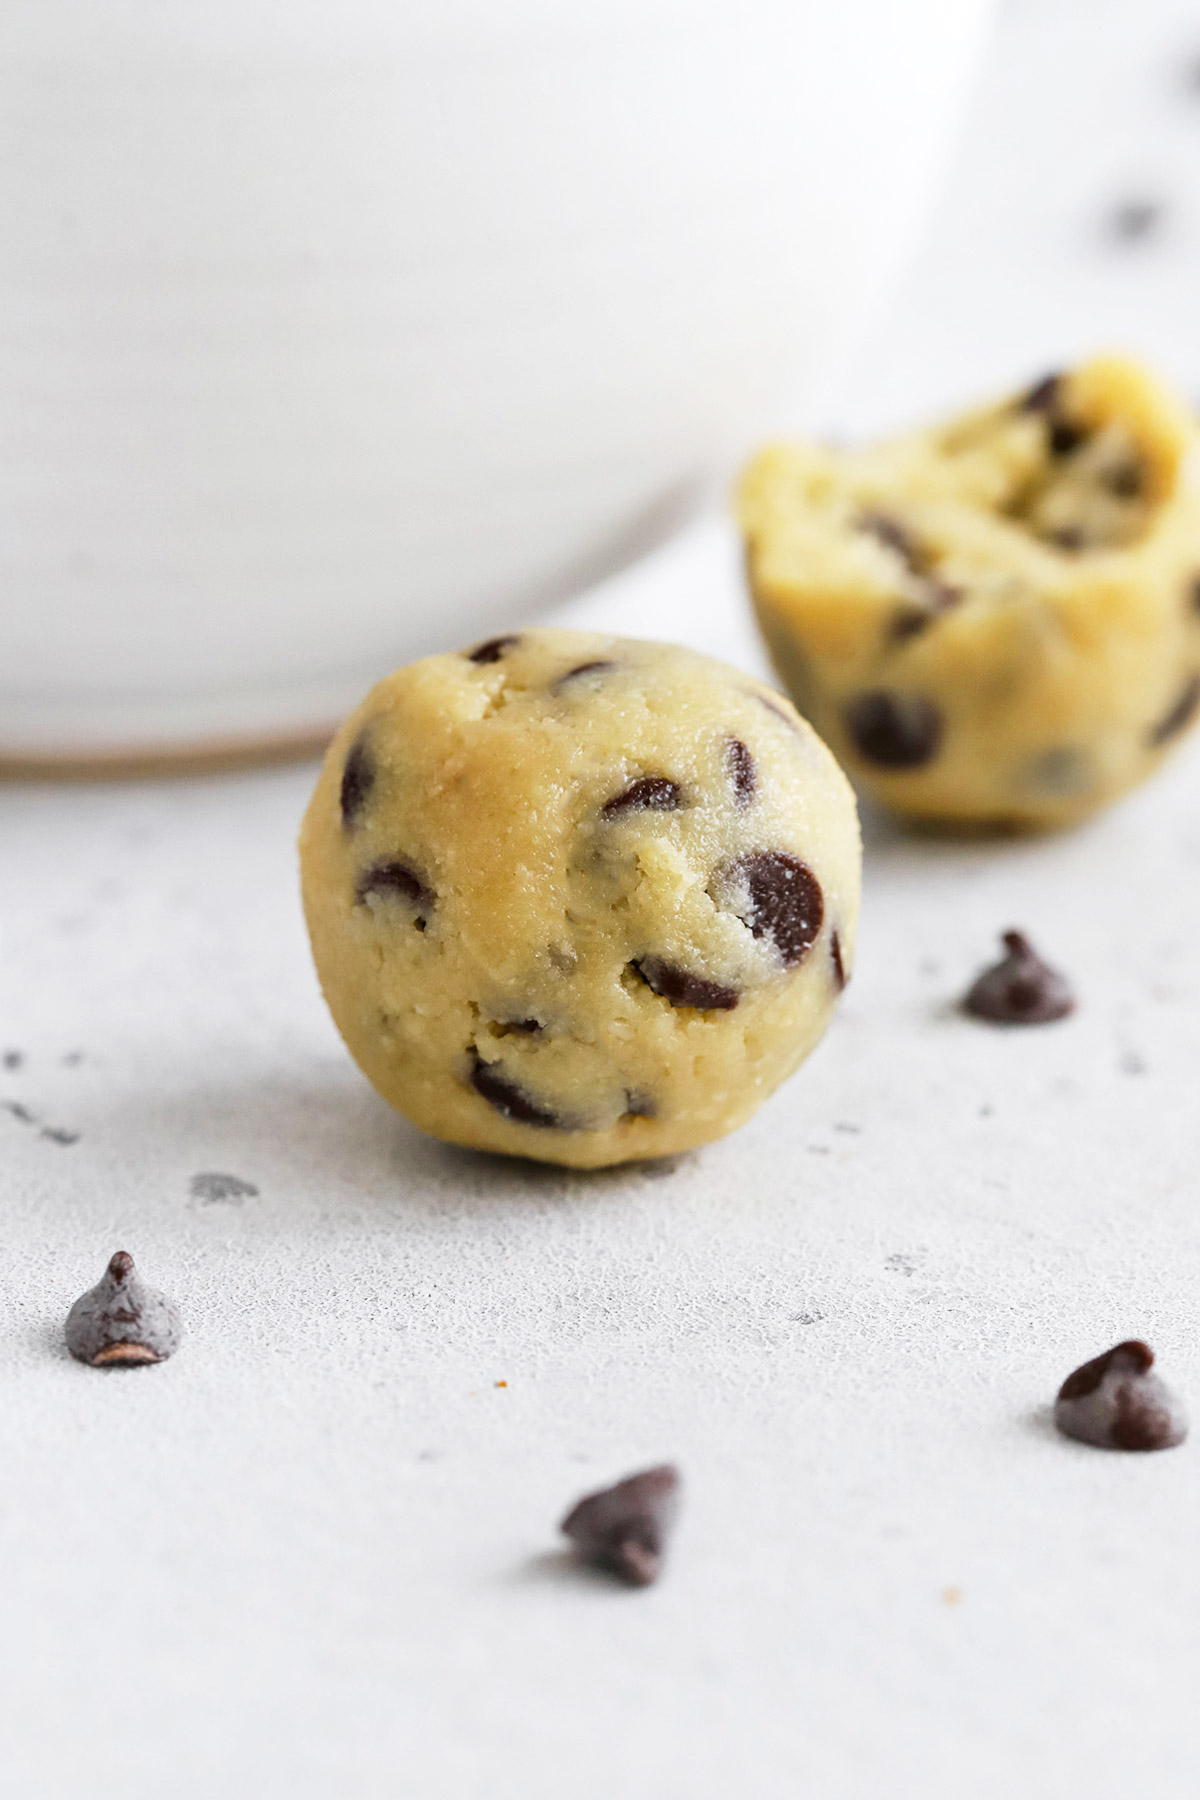 Close up view of healthy edible cookie dough bites with chocolate chips